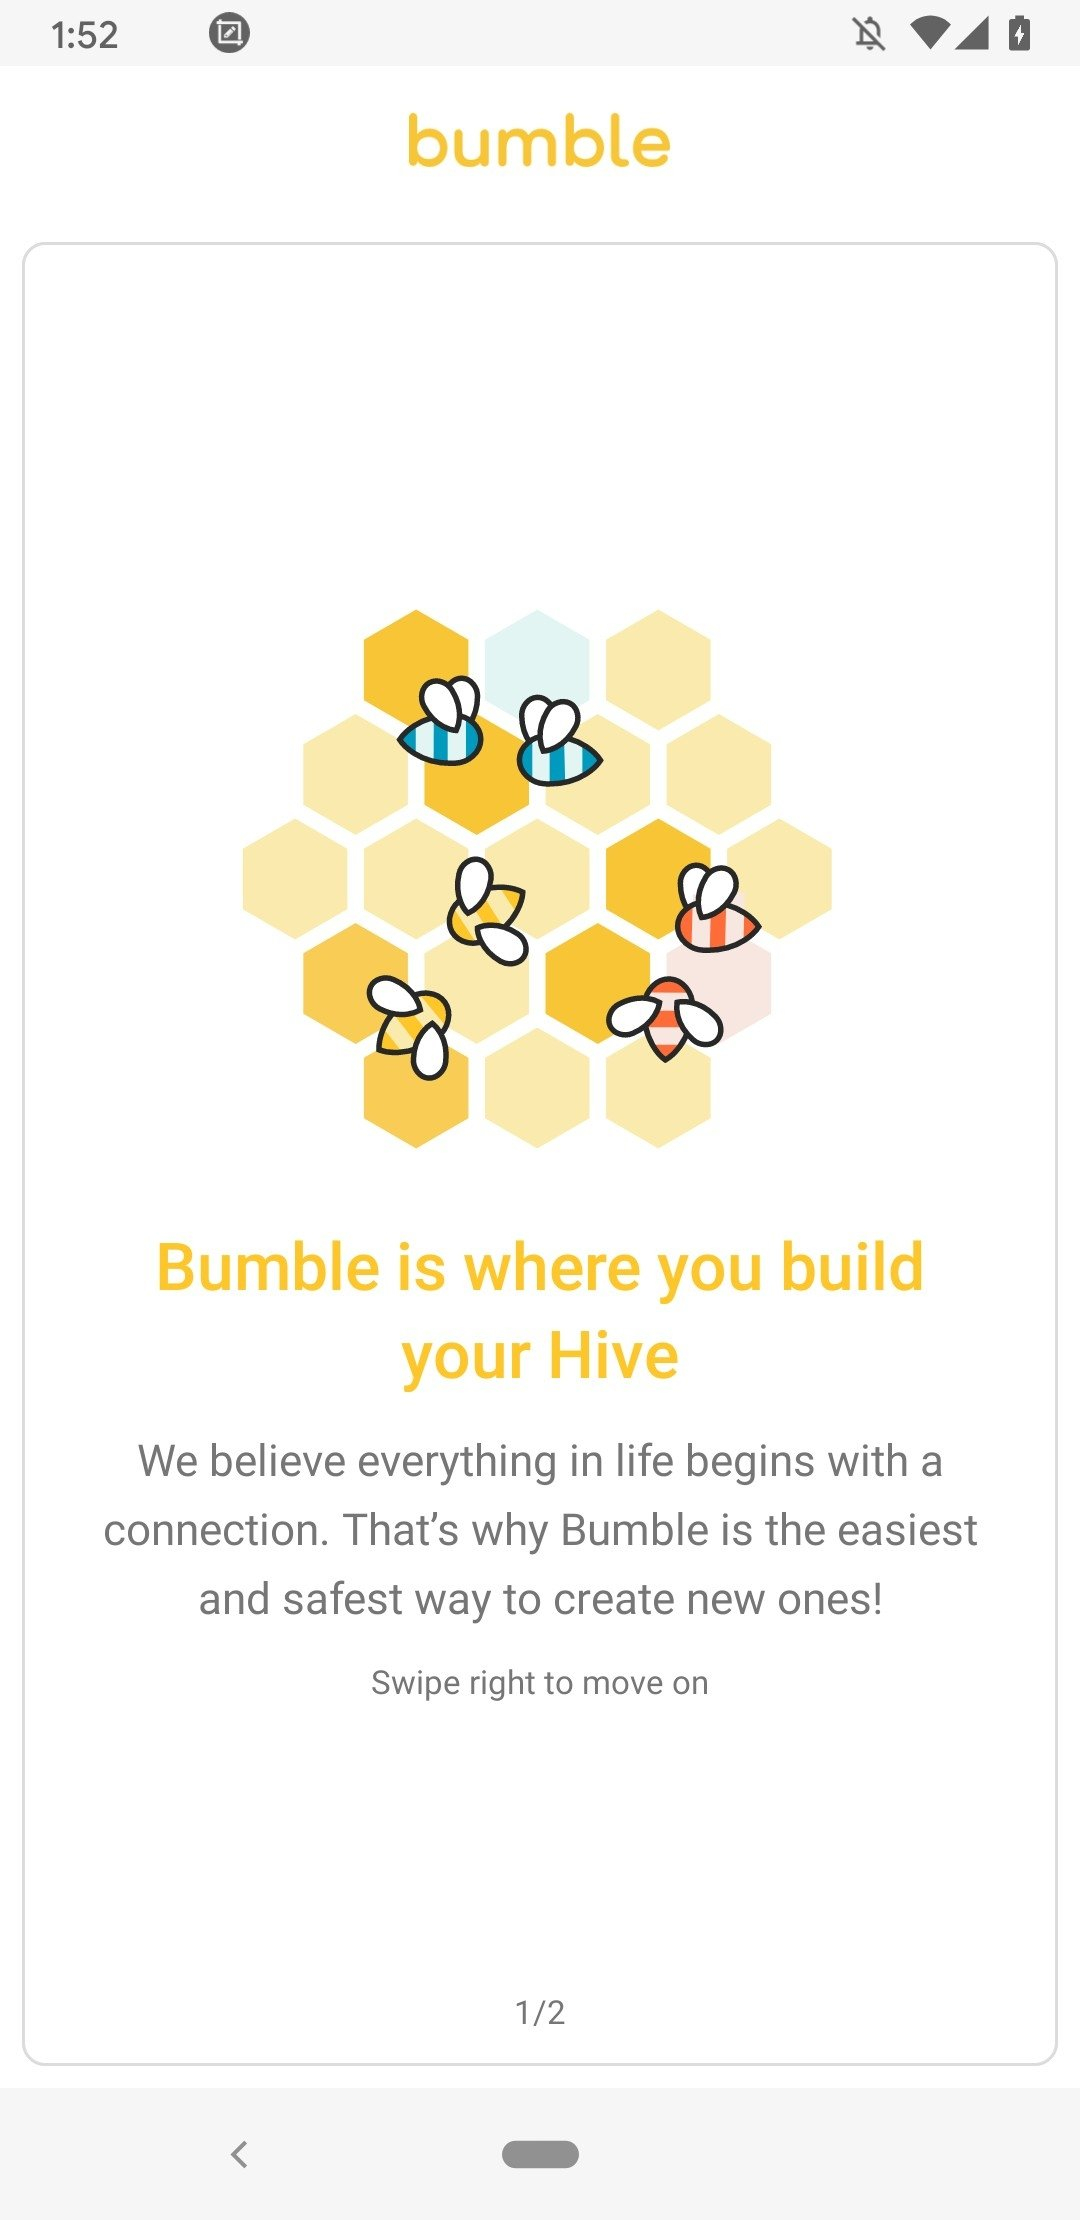 Bumble connects you to new people, and ladies always make the first move.